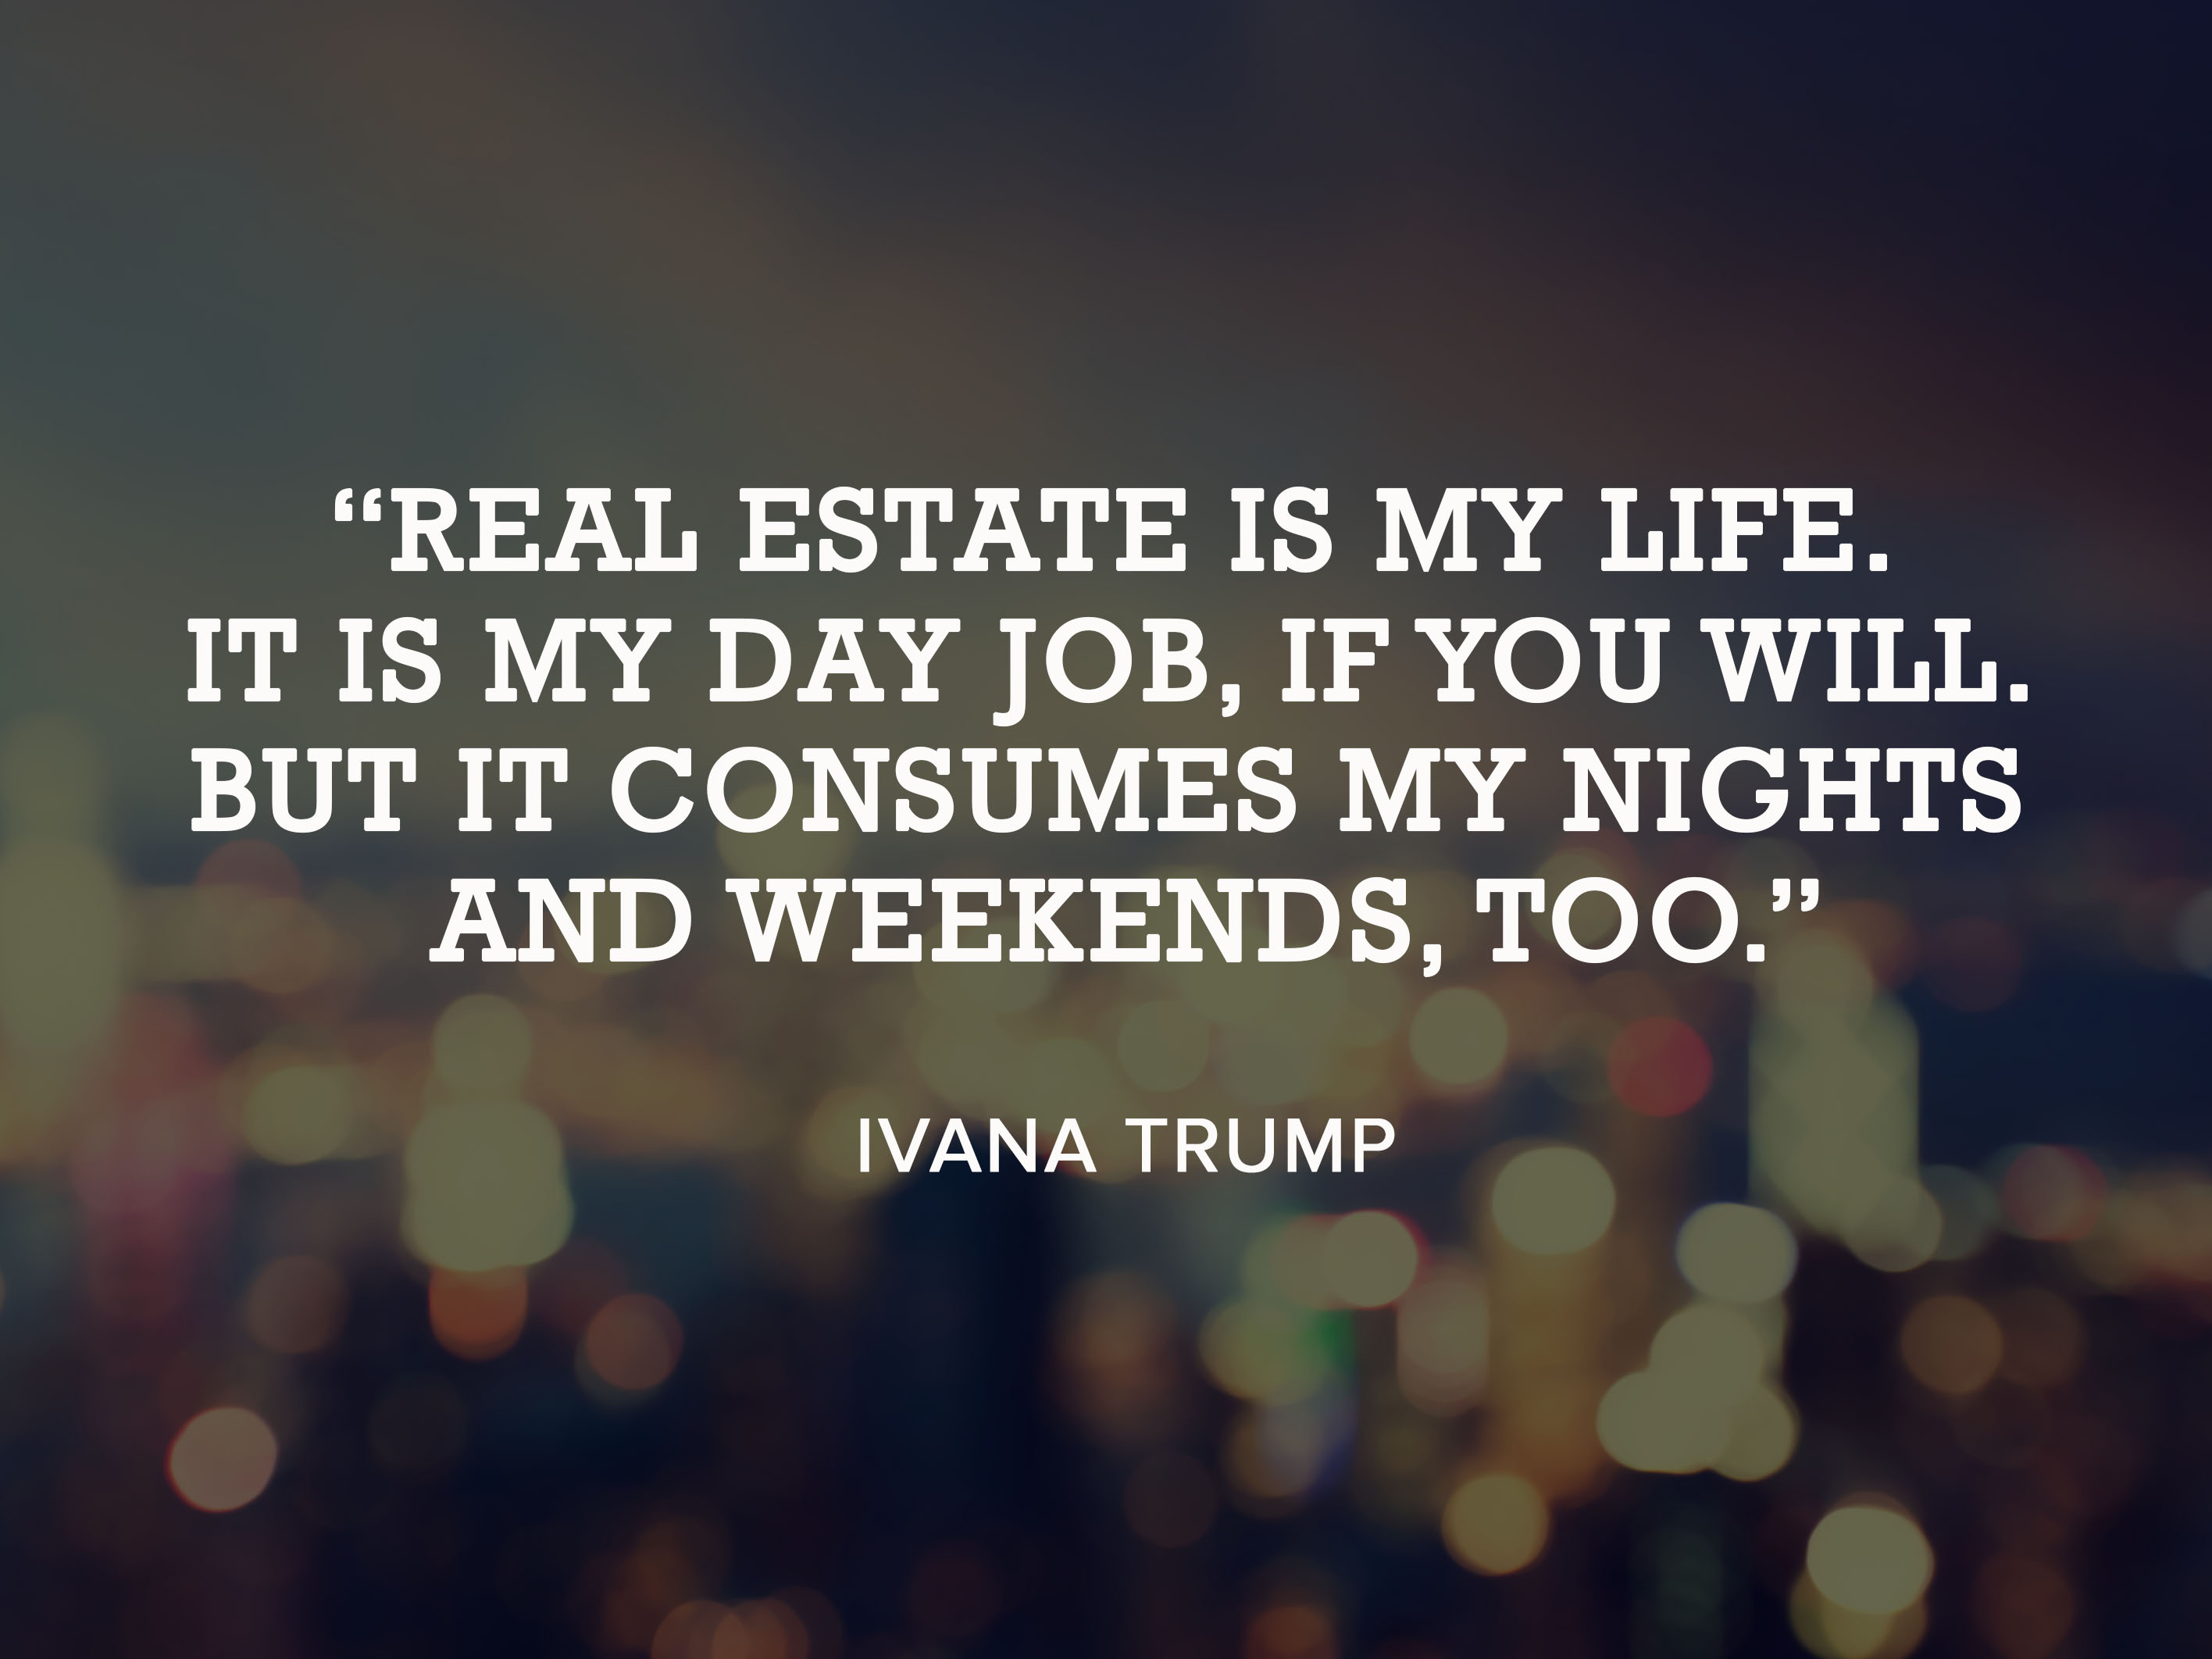 Real Estate Quotes Top 10 Real Estate Investing Quotes That Will Inspire You | HomeUnion Real Estate Quotes